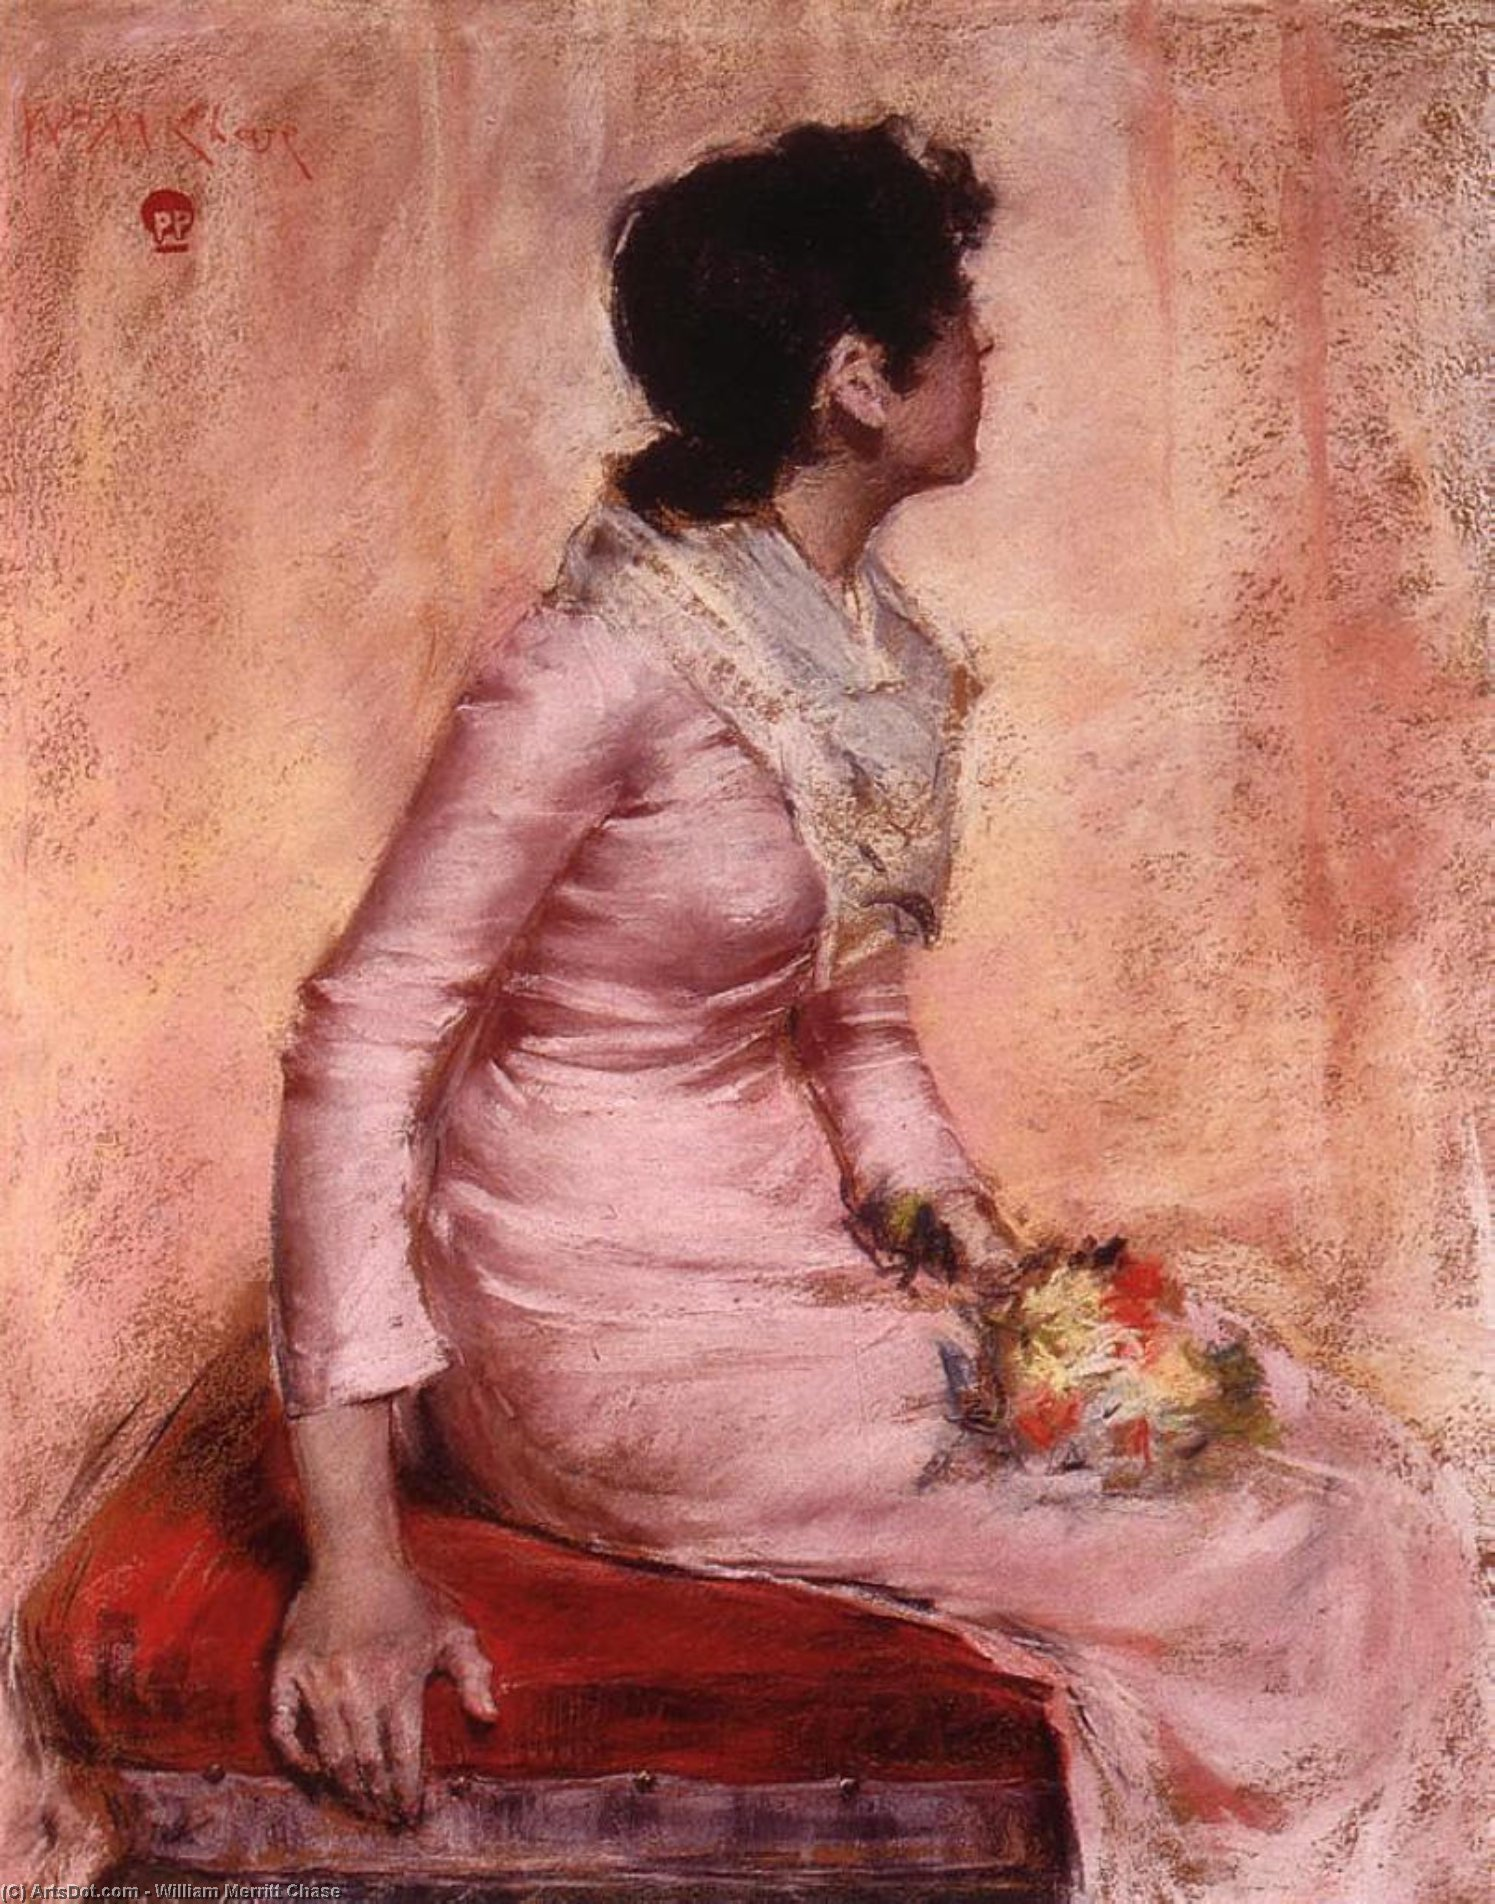 Sorpresa, pastello di William Merritt Chase (1849-1916, United States)